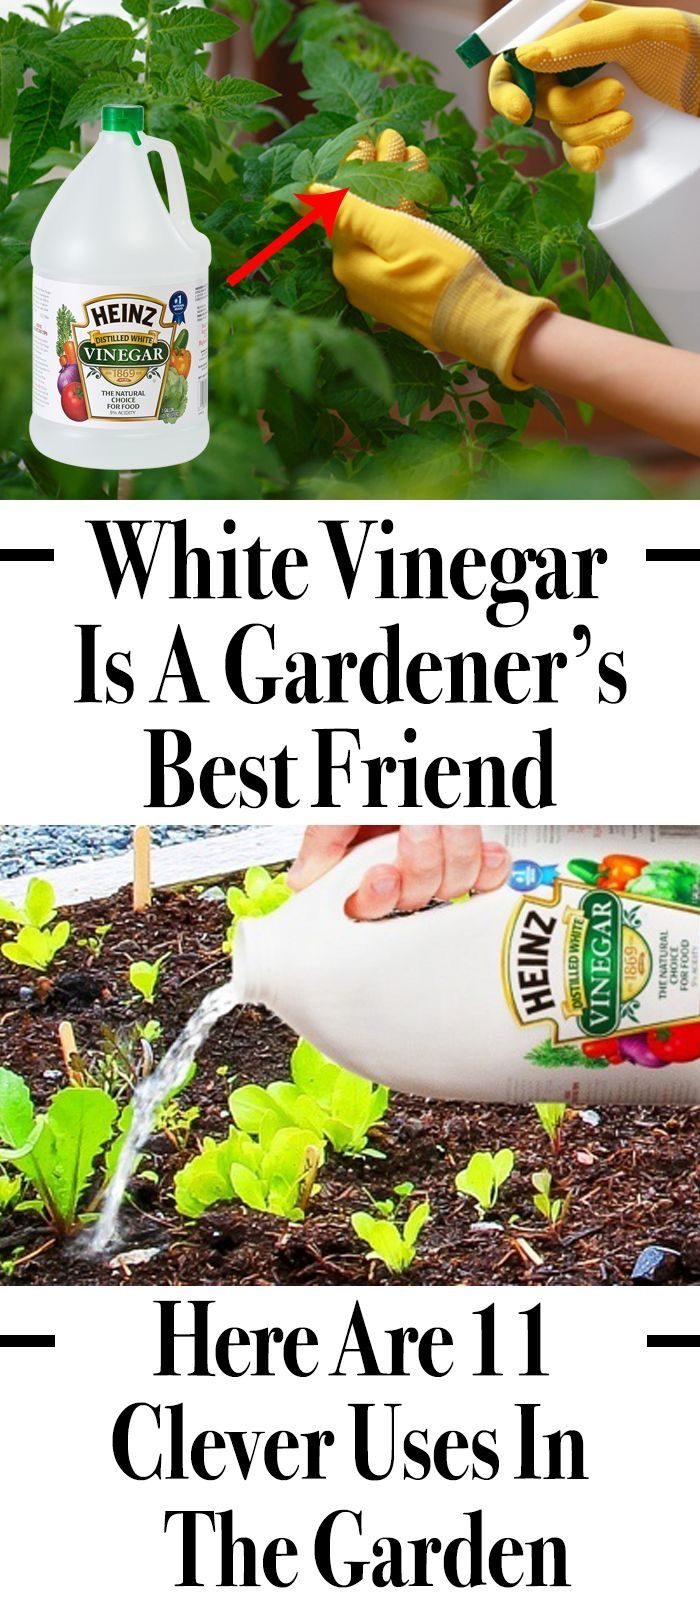 White Vinegar Is a Gardener's Best Friend. Here Are 11 Clever Uses in the Garden   #outdoorgardens